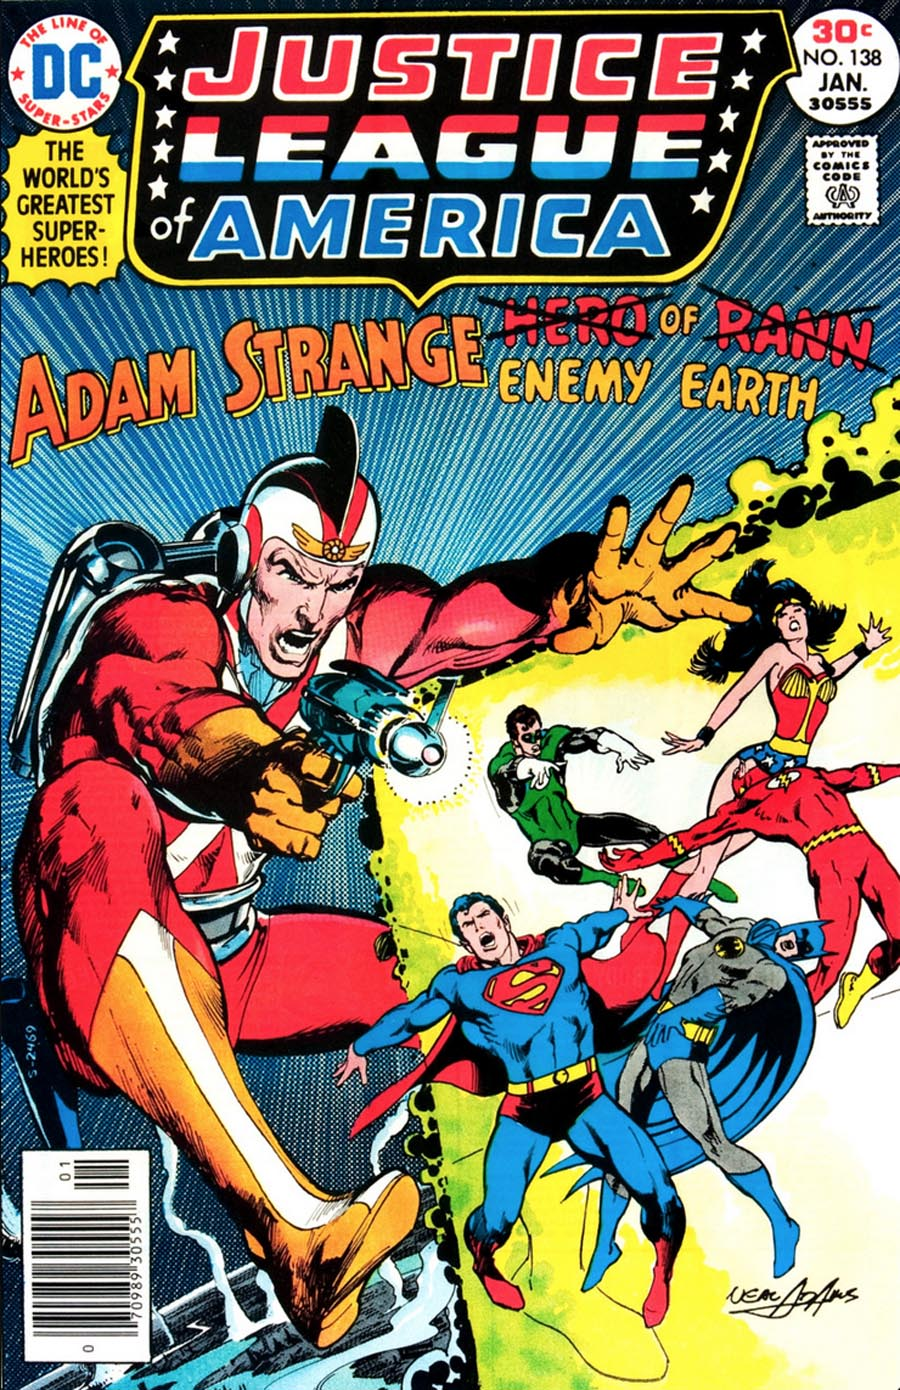 Justice League of America () # 138. Cover by Neal Adams.